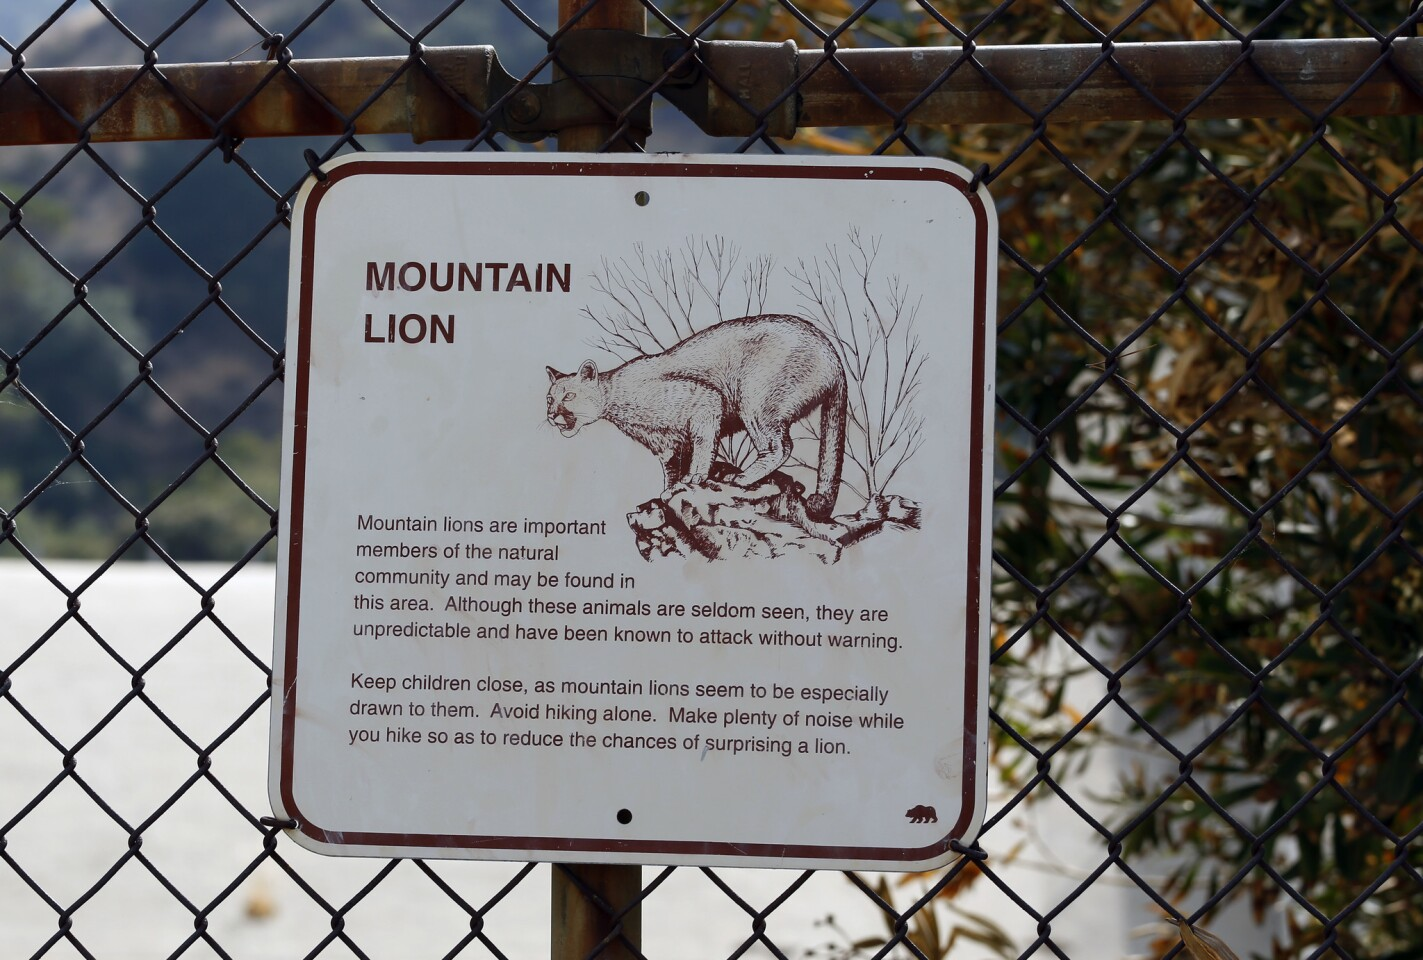 At the entrance to the Beaudry Motorway walk in Glendale you are greeted by a mountain lion warning sign. The Verdugo Mountains separating the communities of Montrose and La Crescenta from Glendale and Burbank rise sharply and present impressive city and valley views.